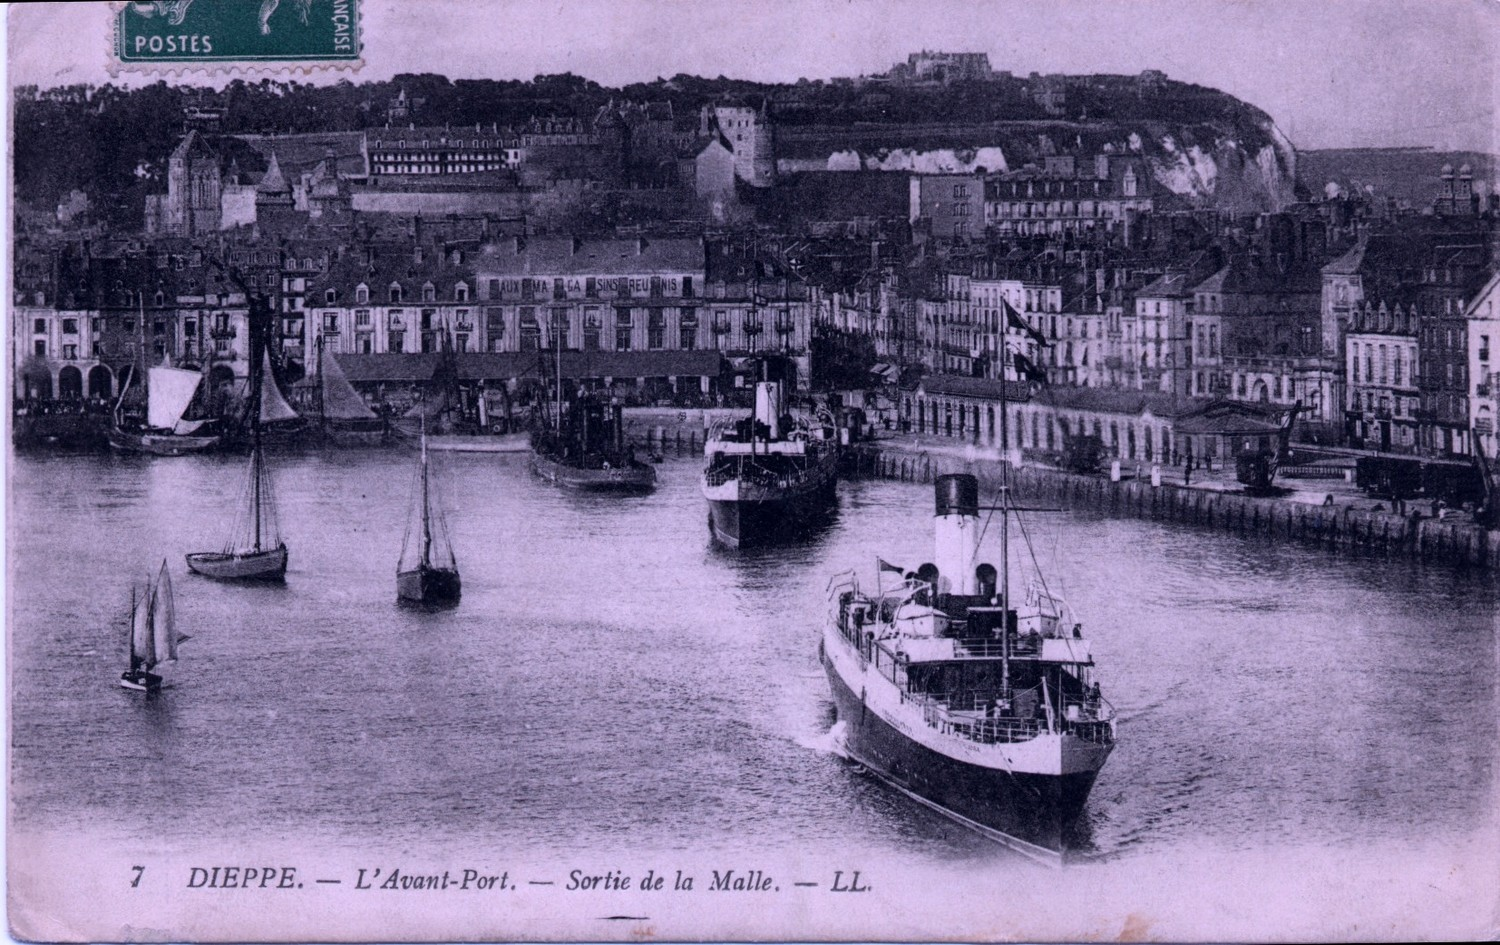 Dieppe, France - The port of Dieppe